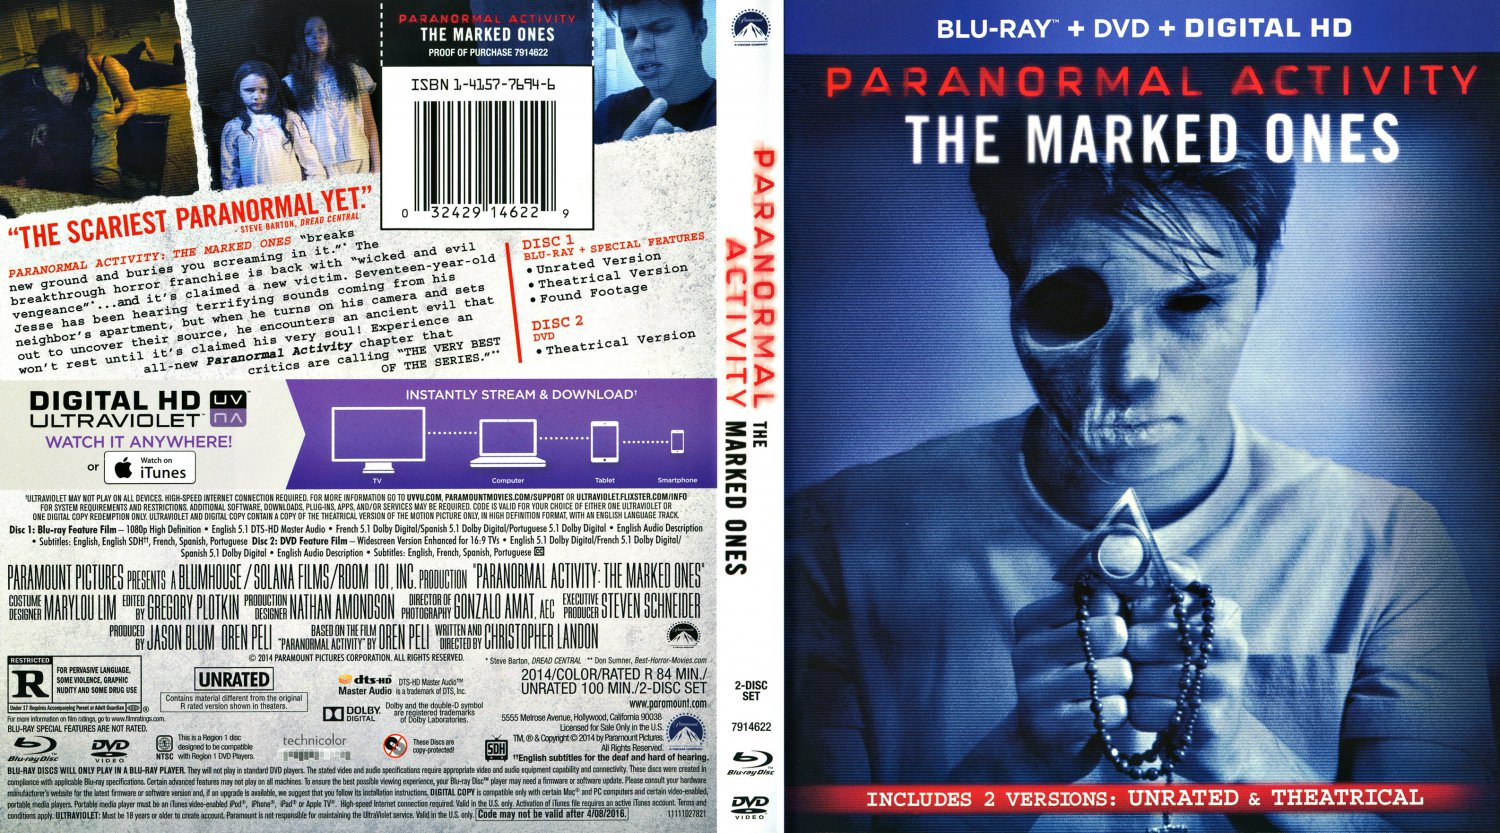 paranormal activity marked ones dvd cover - photo #9